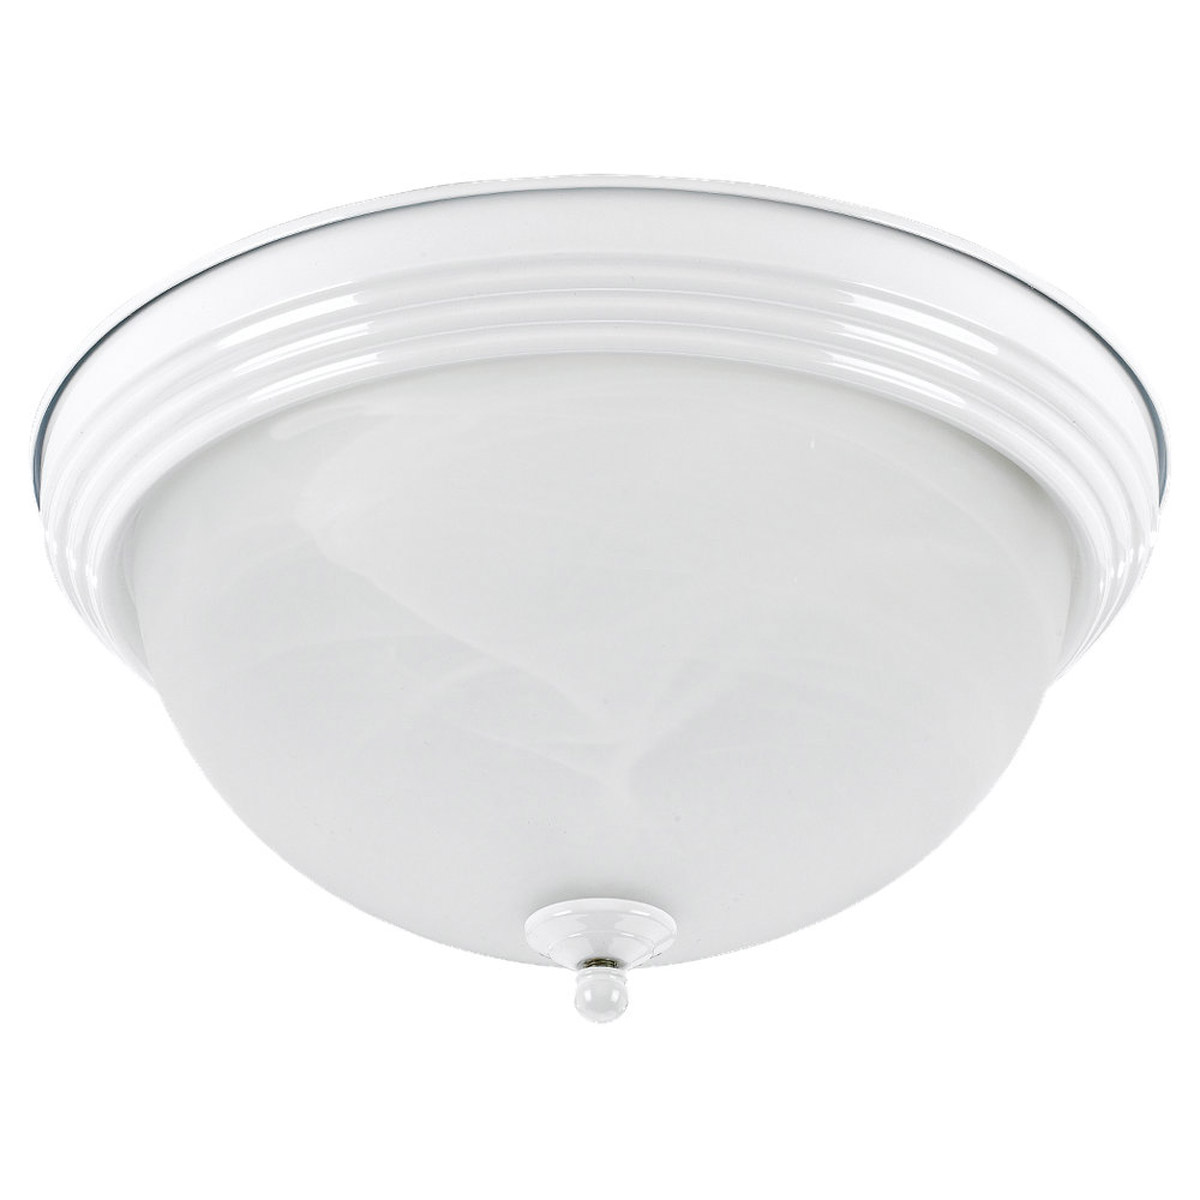 Sea Gull Lighting Ridley 3 Light Flush Mount in White 79178BLE-15 photo